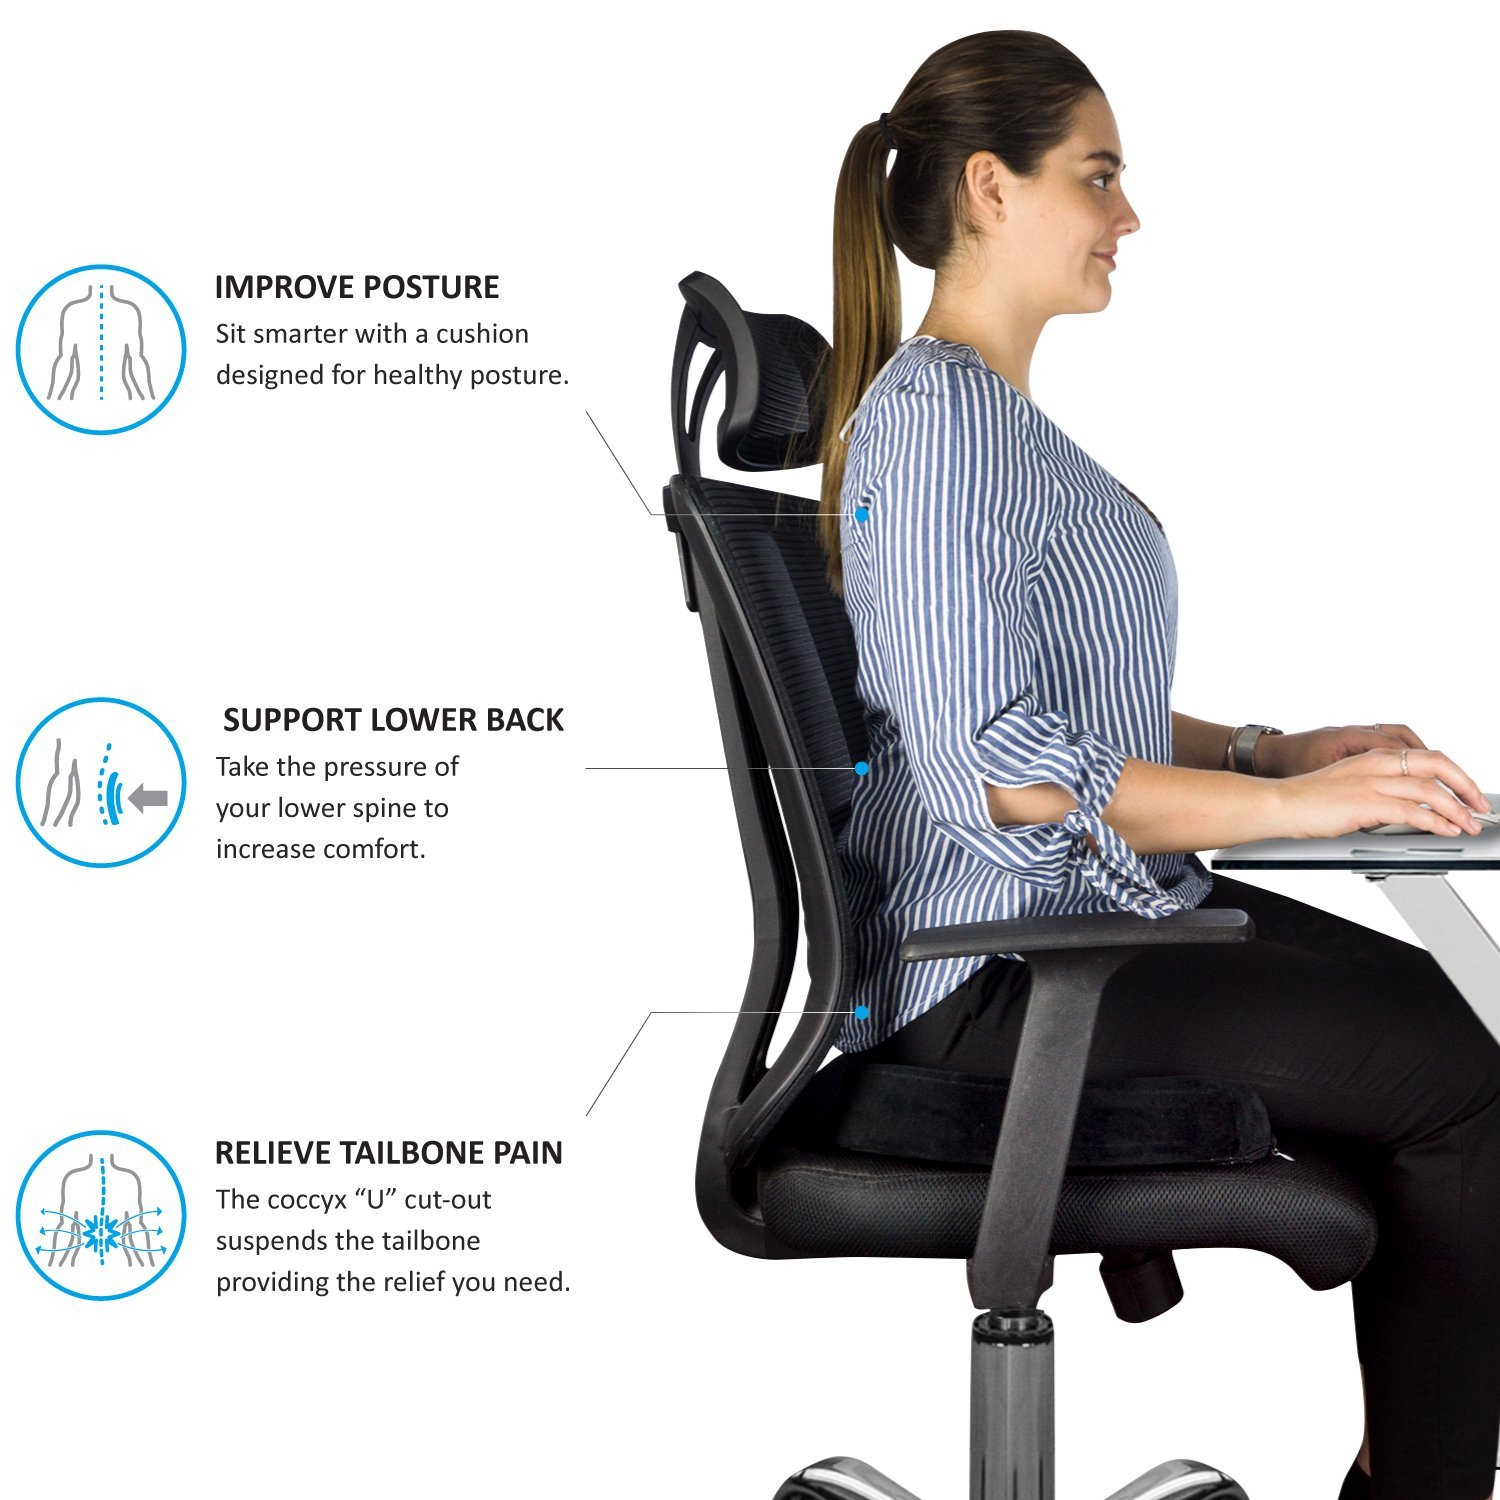 An Ergonomic Office Chair Is Great For A Tailbone Pain Autonomous